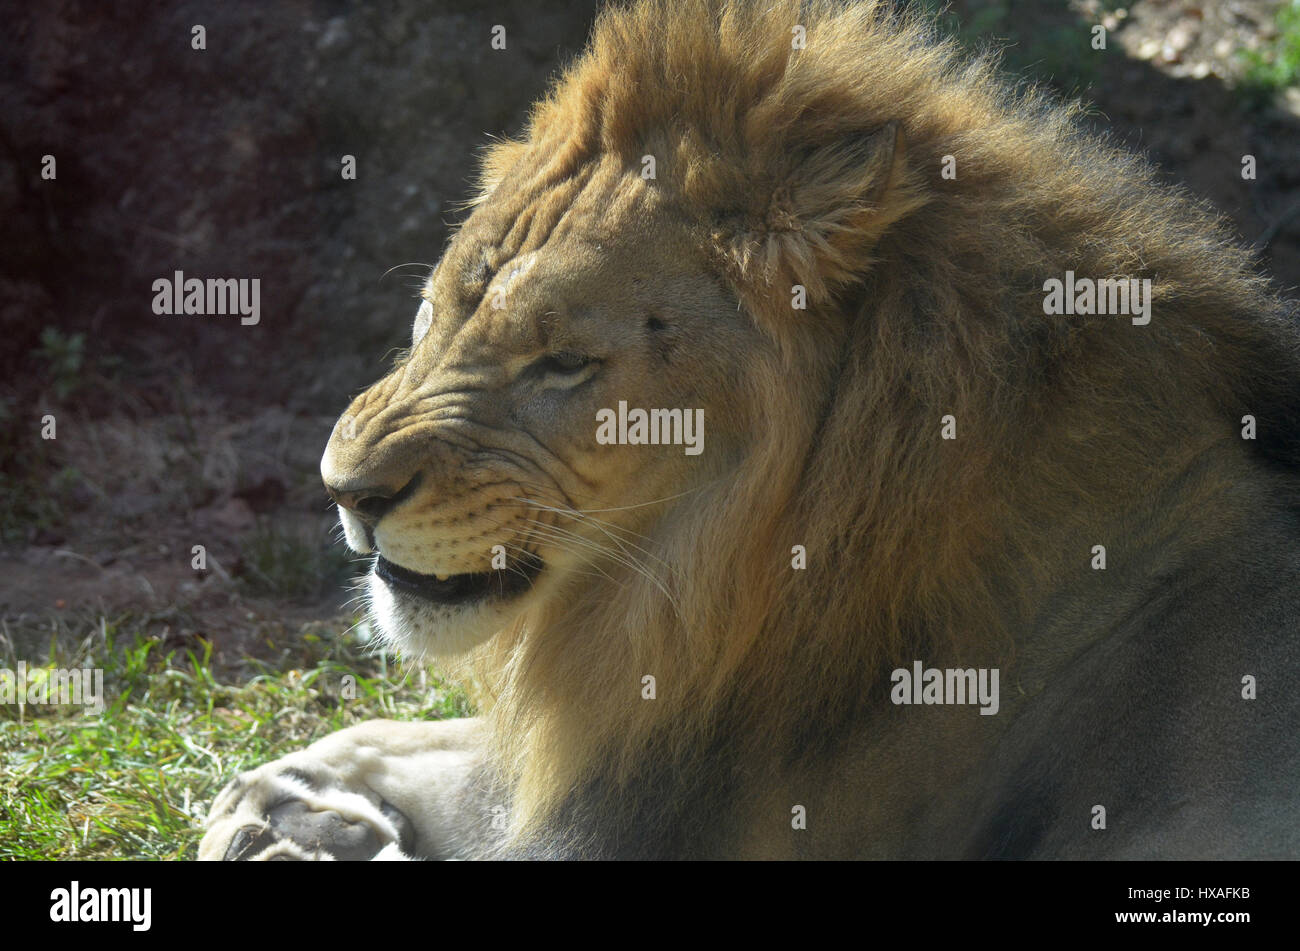 Snarling and growling lion laying down. - Stock Image